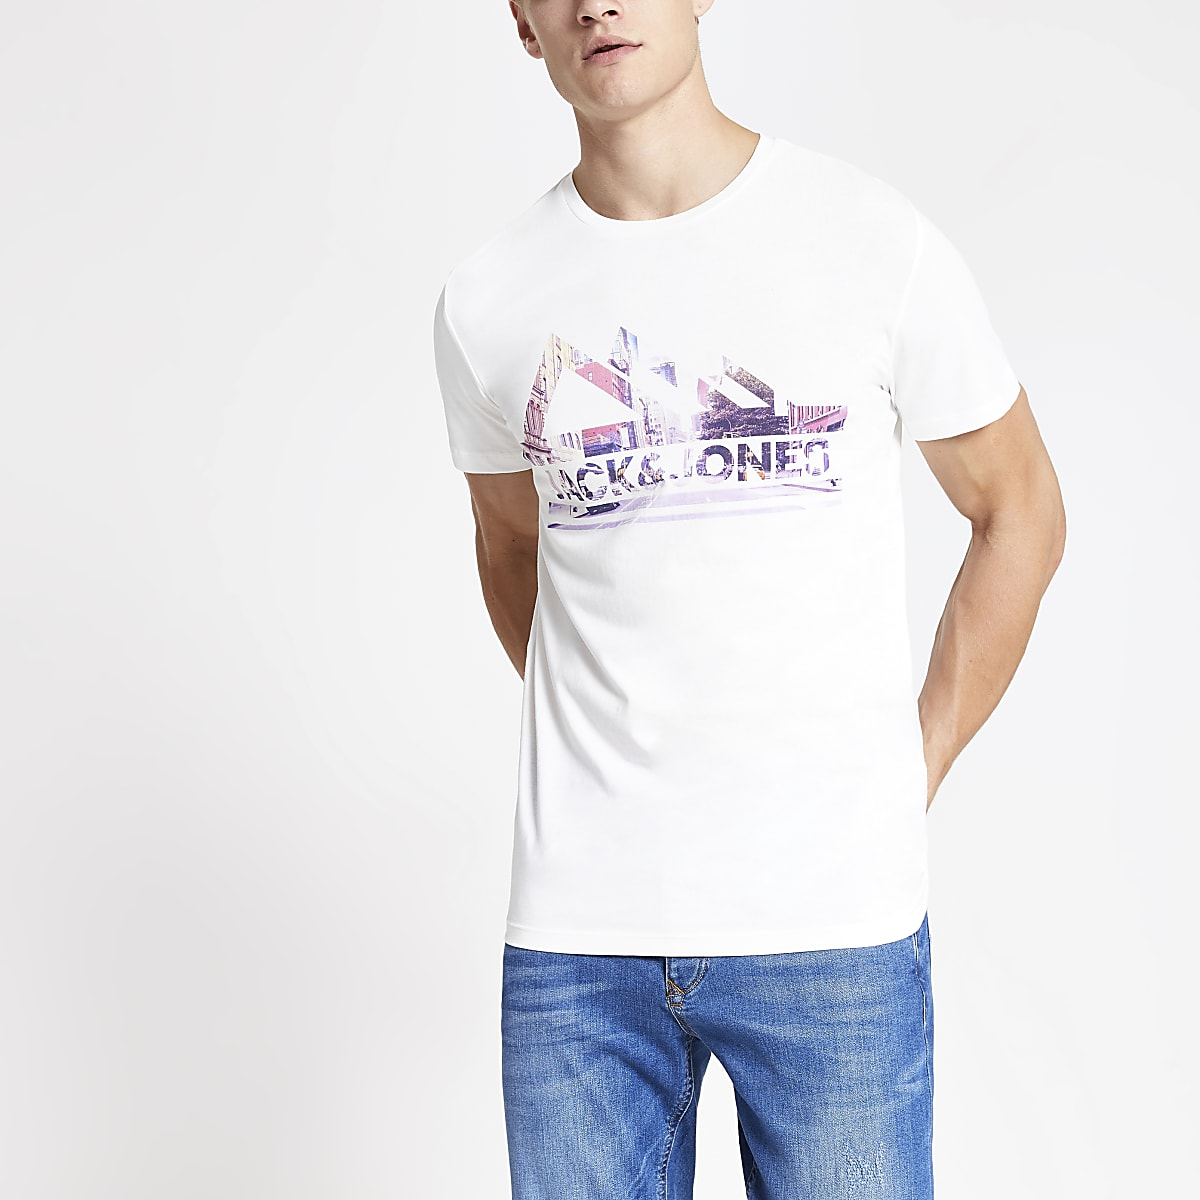 Jack and Jones white branded T-shirt